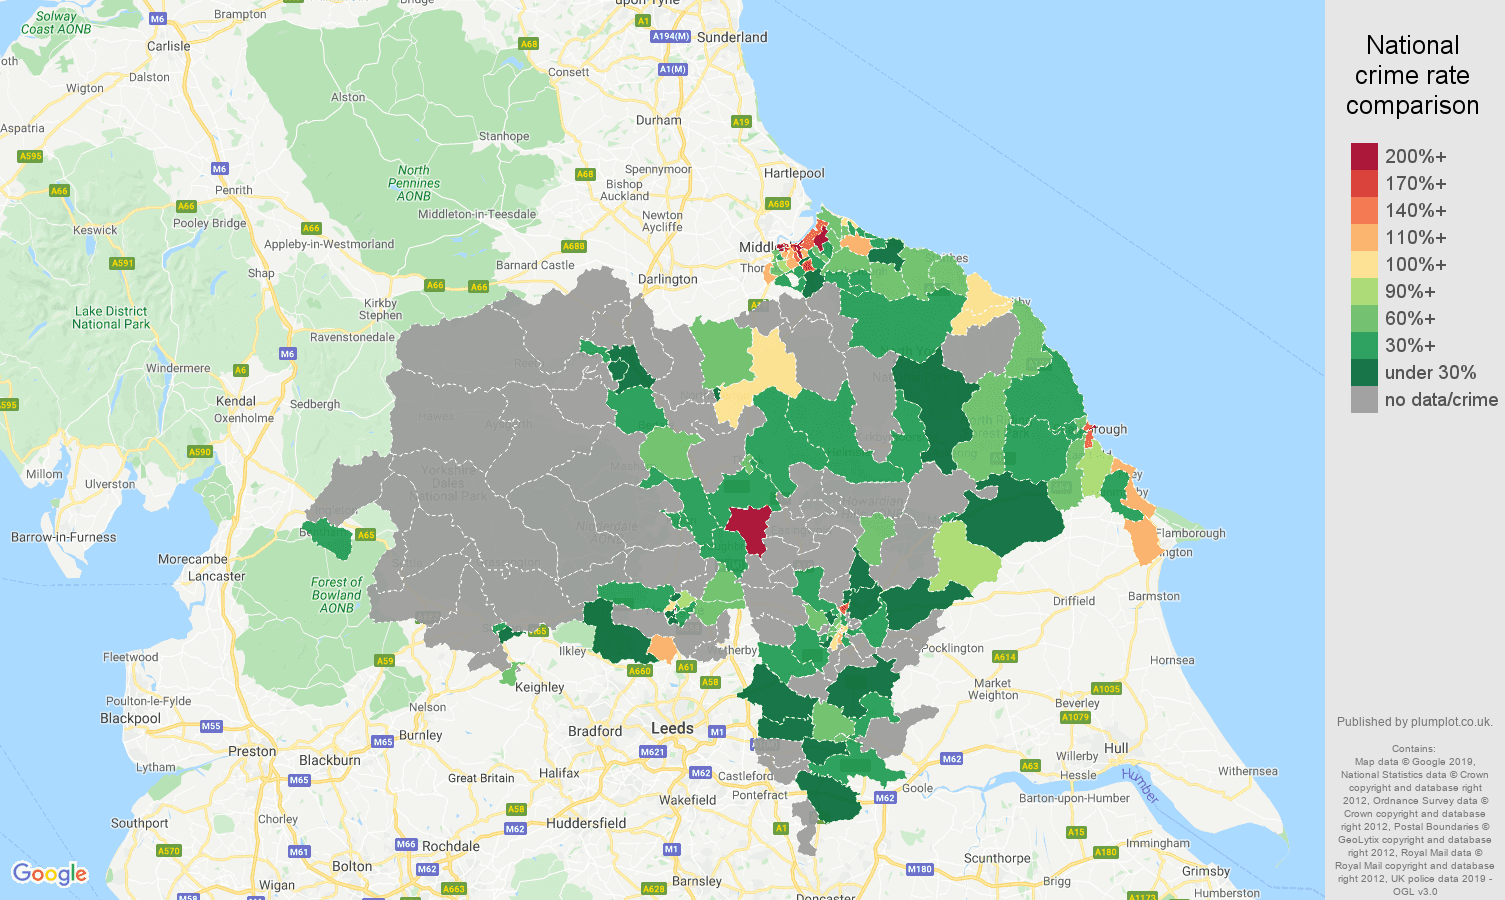 North Yorkshire possession of weapons crime rate comparison map